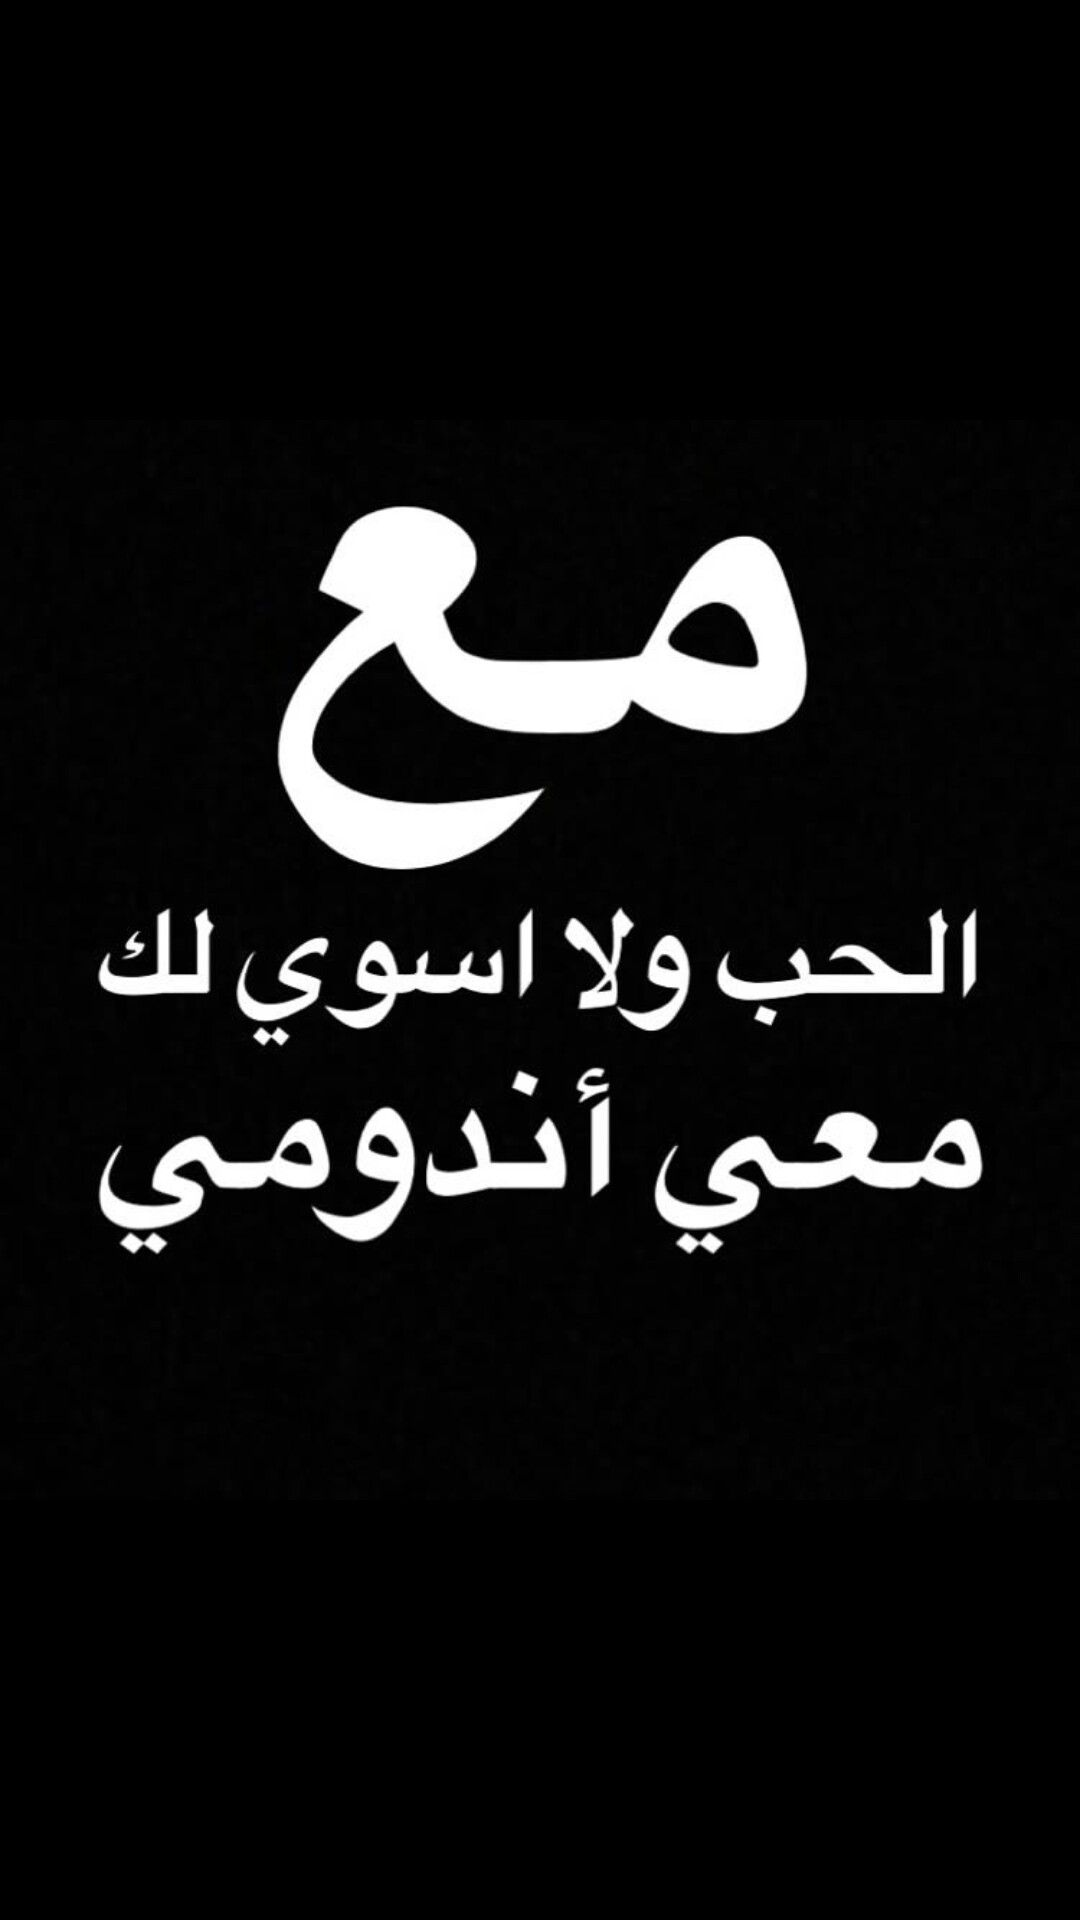 Pin By Vii3 On Photos Tumblr Funny Relatable Quotes Funny Arabic Quotes Funny Quotes